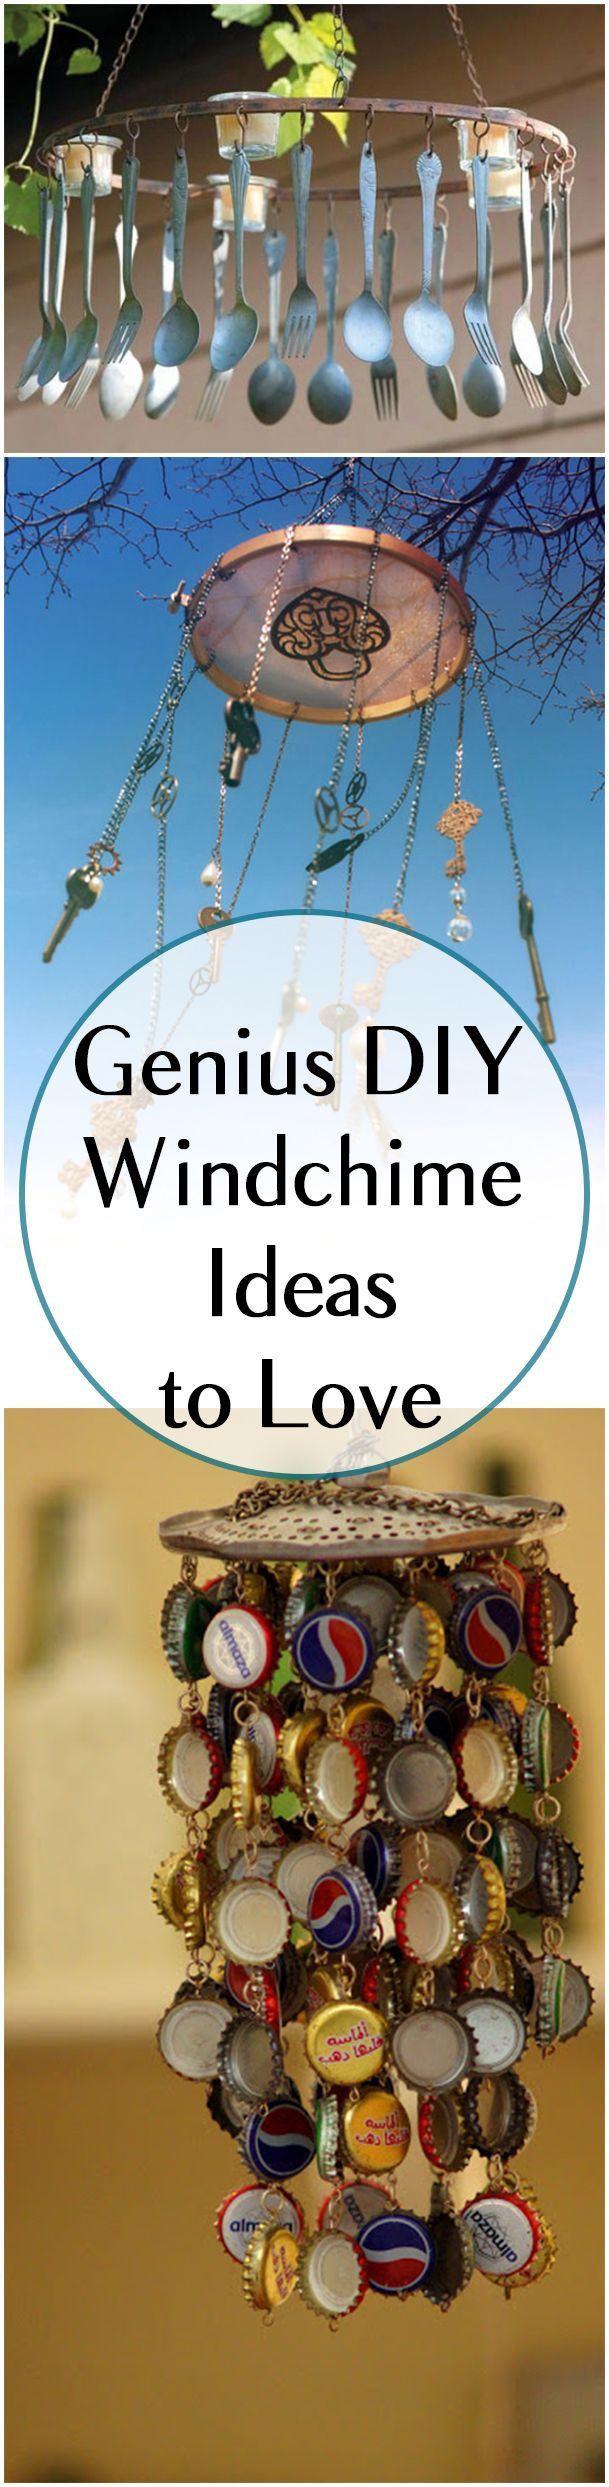 DIY Wind Chime Idesa, Projects and Tutorials. Amazing designs that are super easy and cheap!